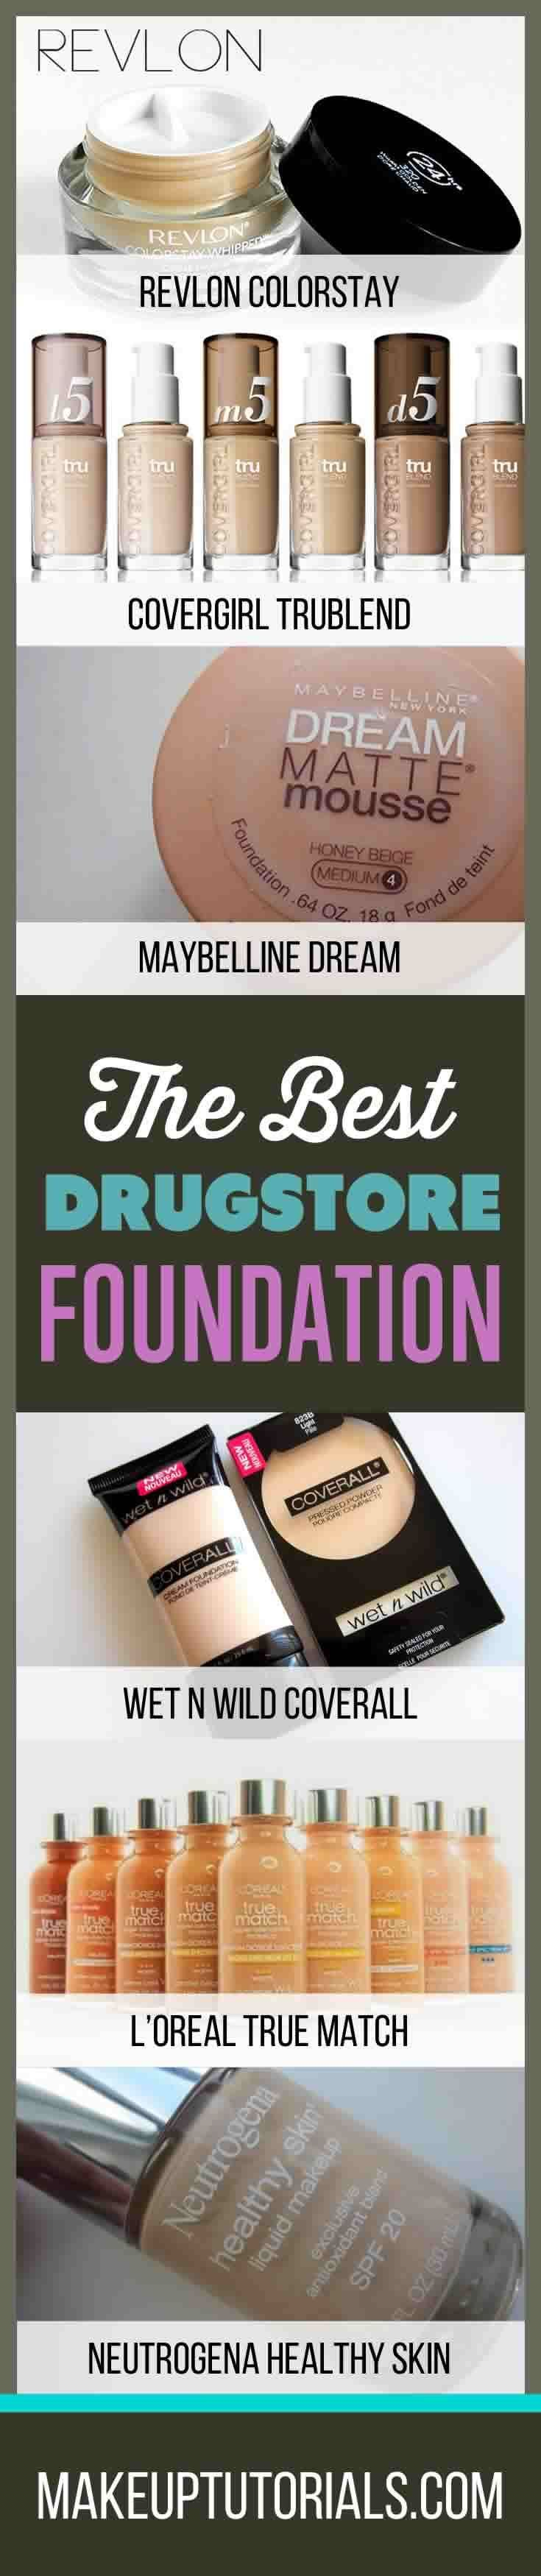 All The Best Drugstore Dupes For Finding Cheap Makeup | Drugstore Makeup Brands You'll Love By Makeup Tutorials. http://makeuptutorials.com/best-drugstore-foundation/